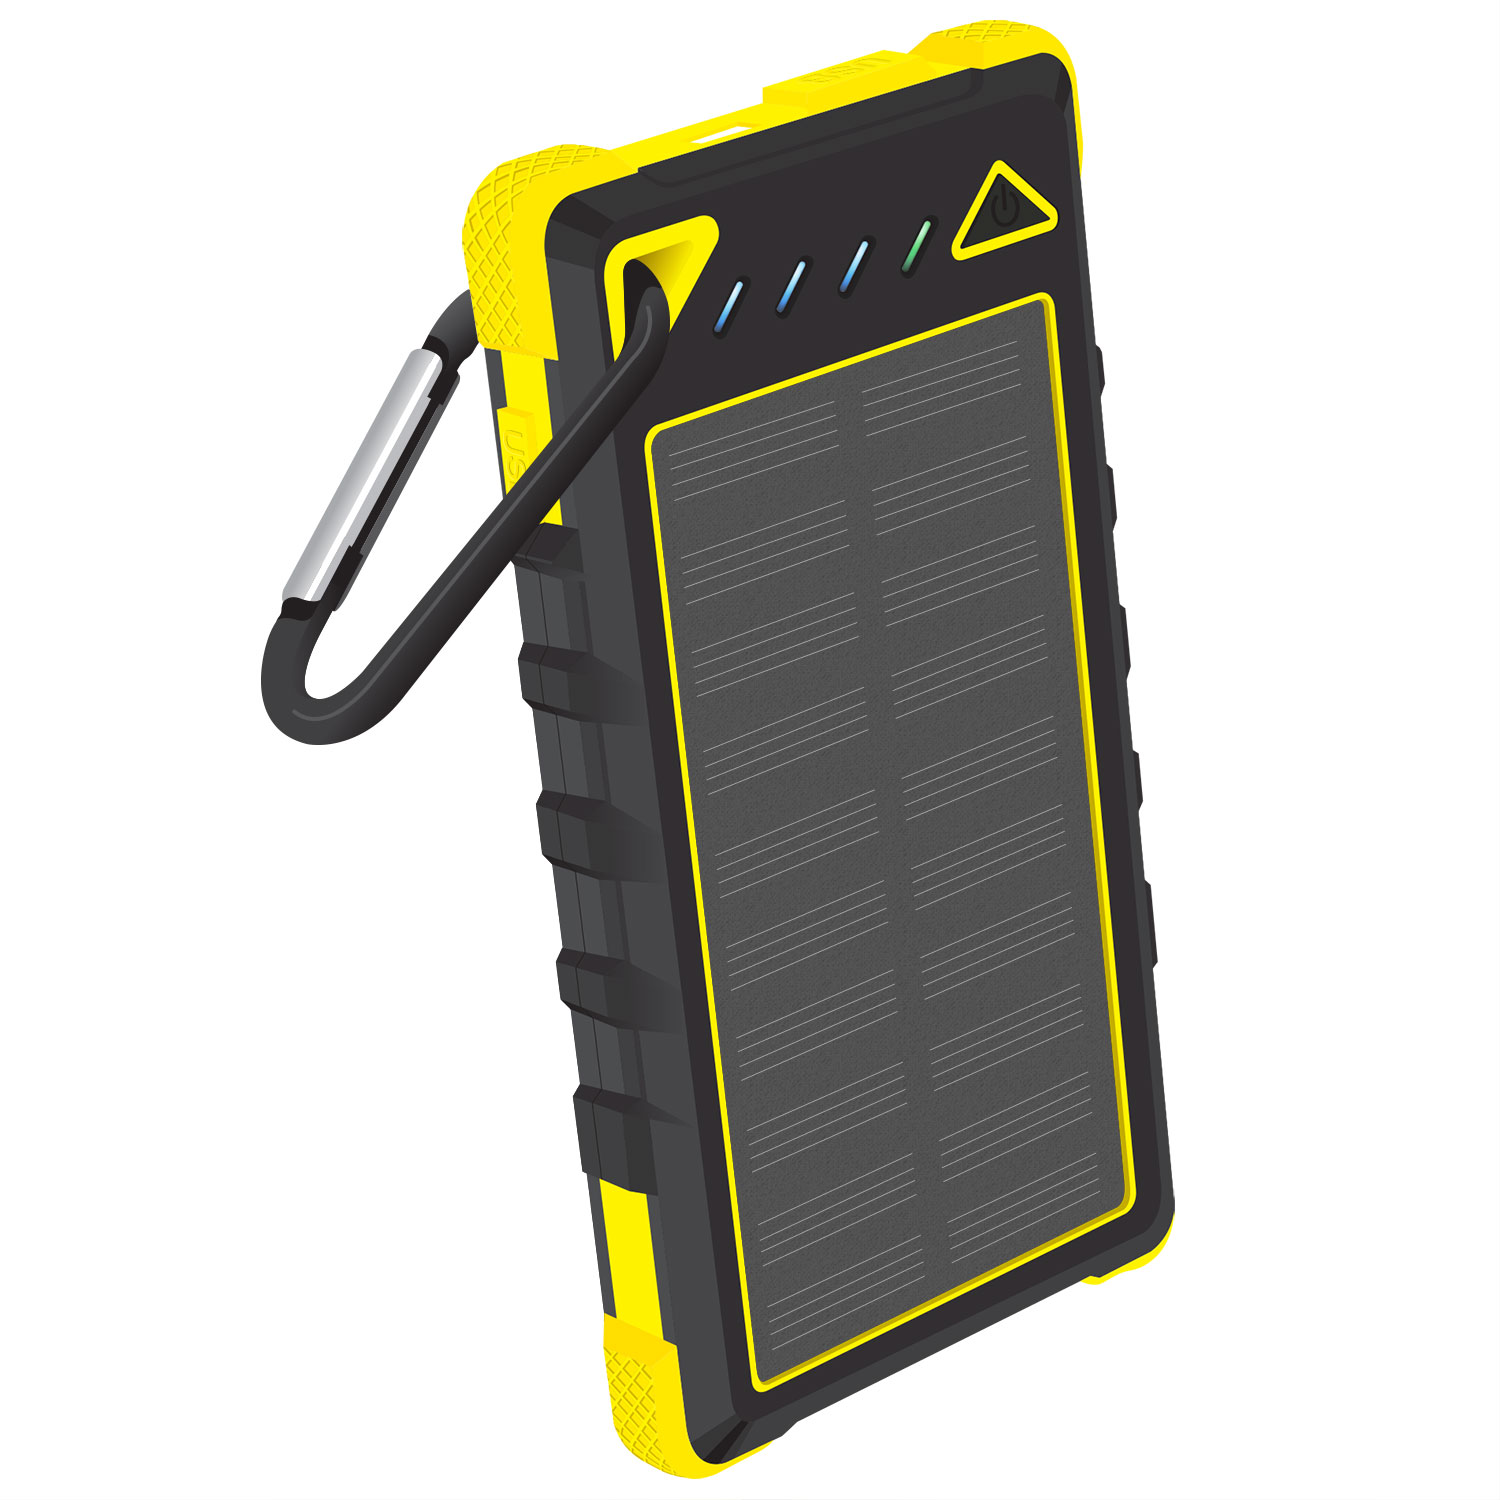 Samsung Galaxy S10 Plus Solar Powered Portable PowerBank Type-C Yellow